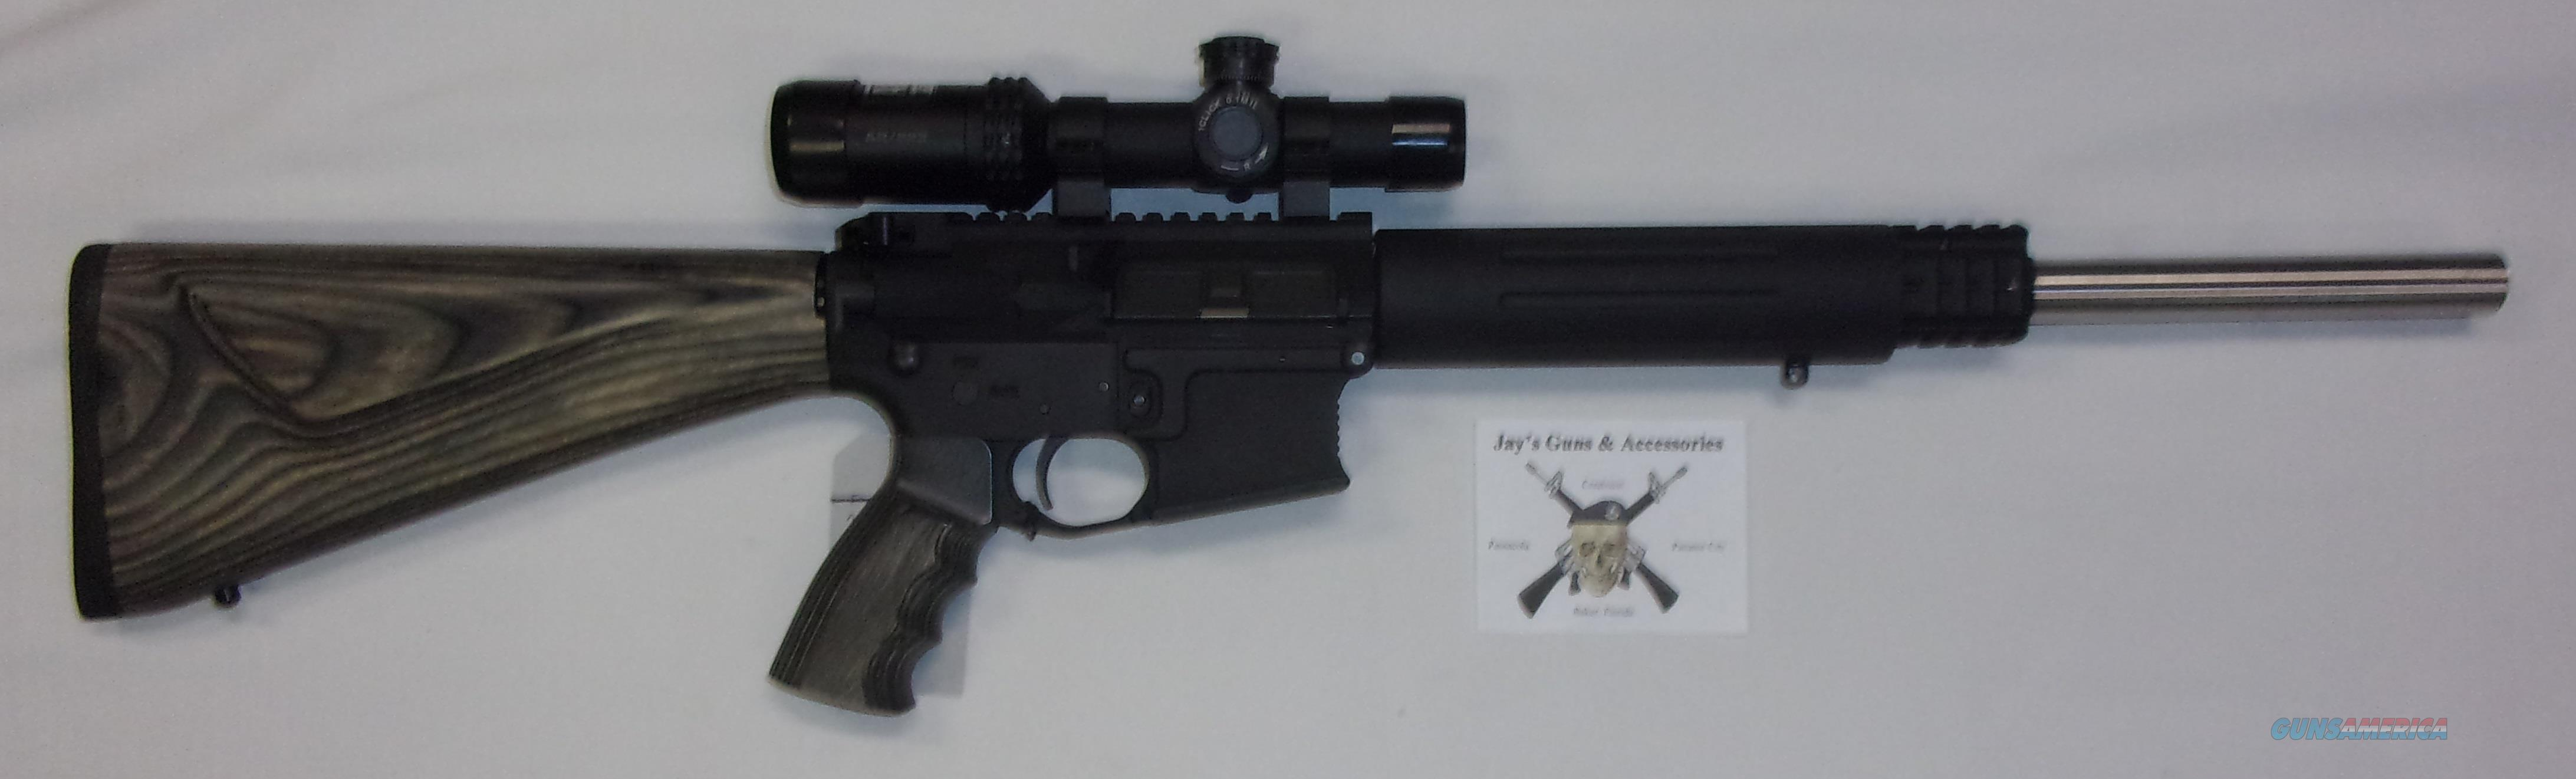 C3 Defense C3-15 w/Scope  Guns > Rifles > AR-15 Rifles - Small Manufacturers > Complete Rifle